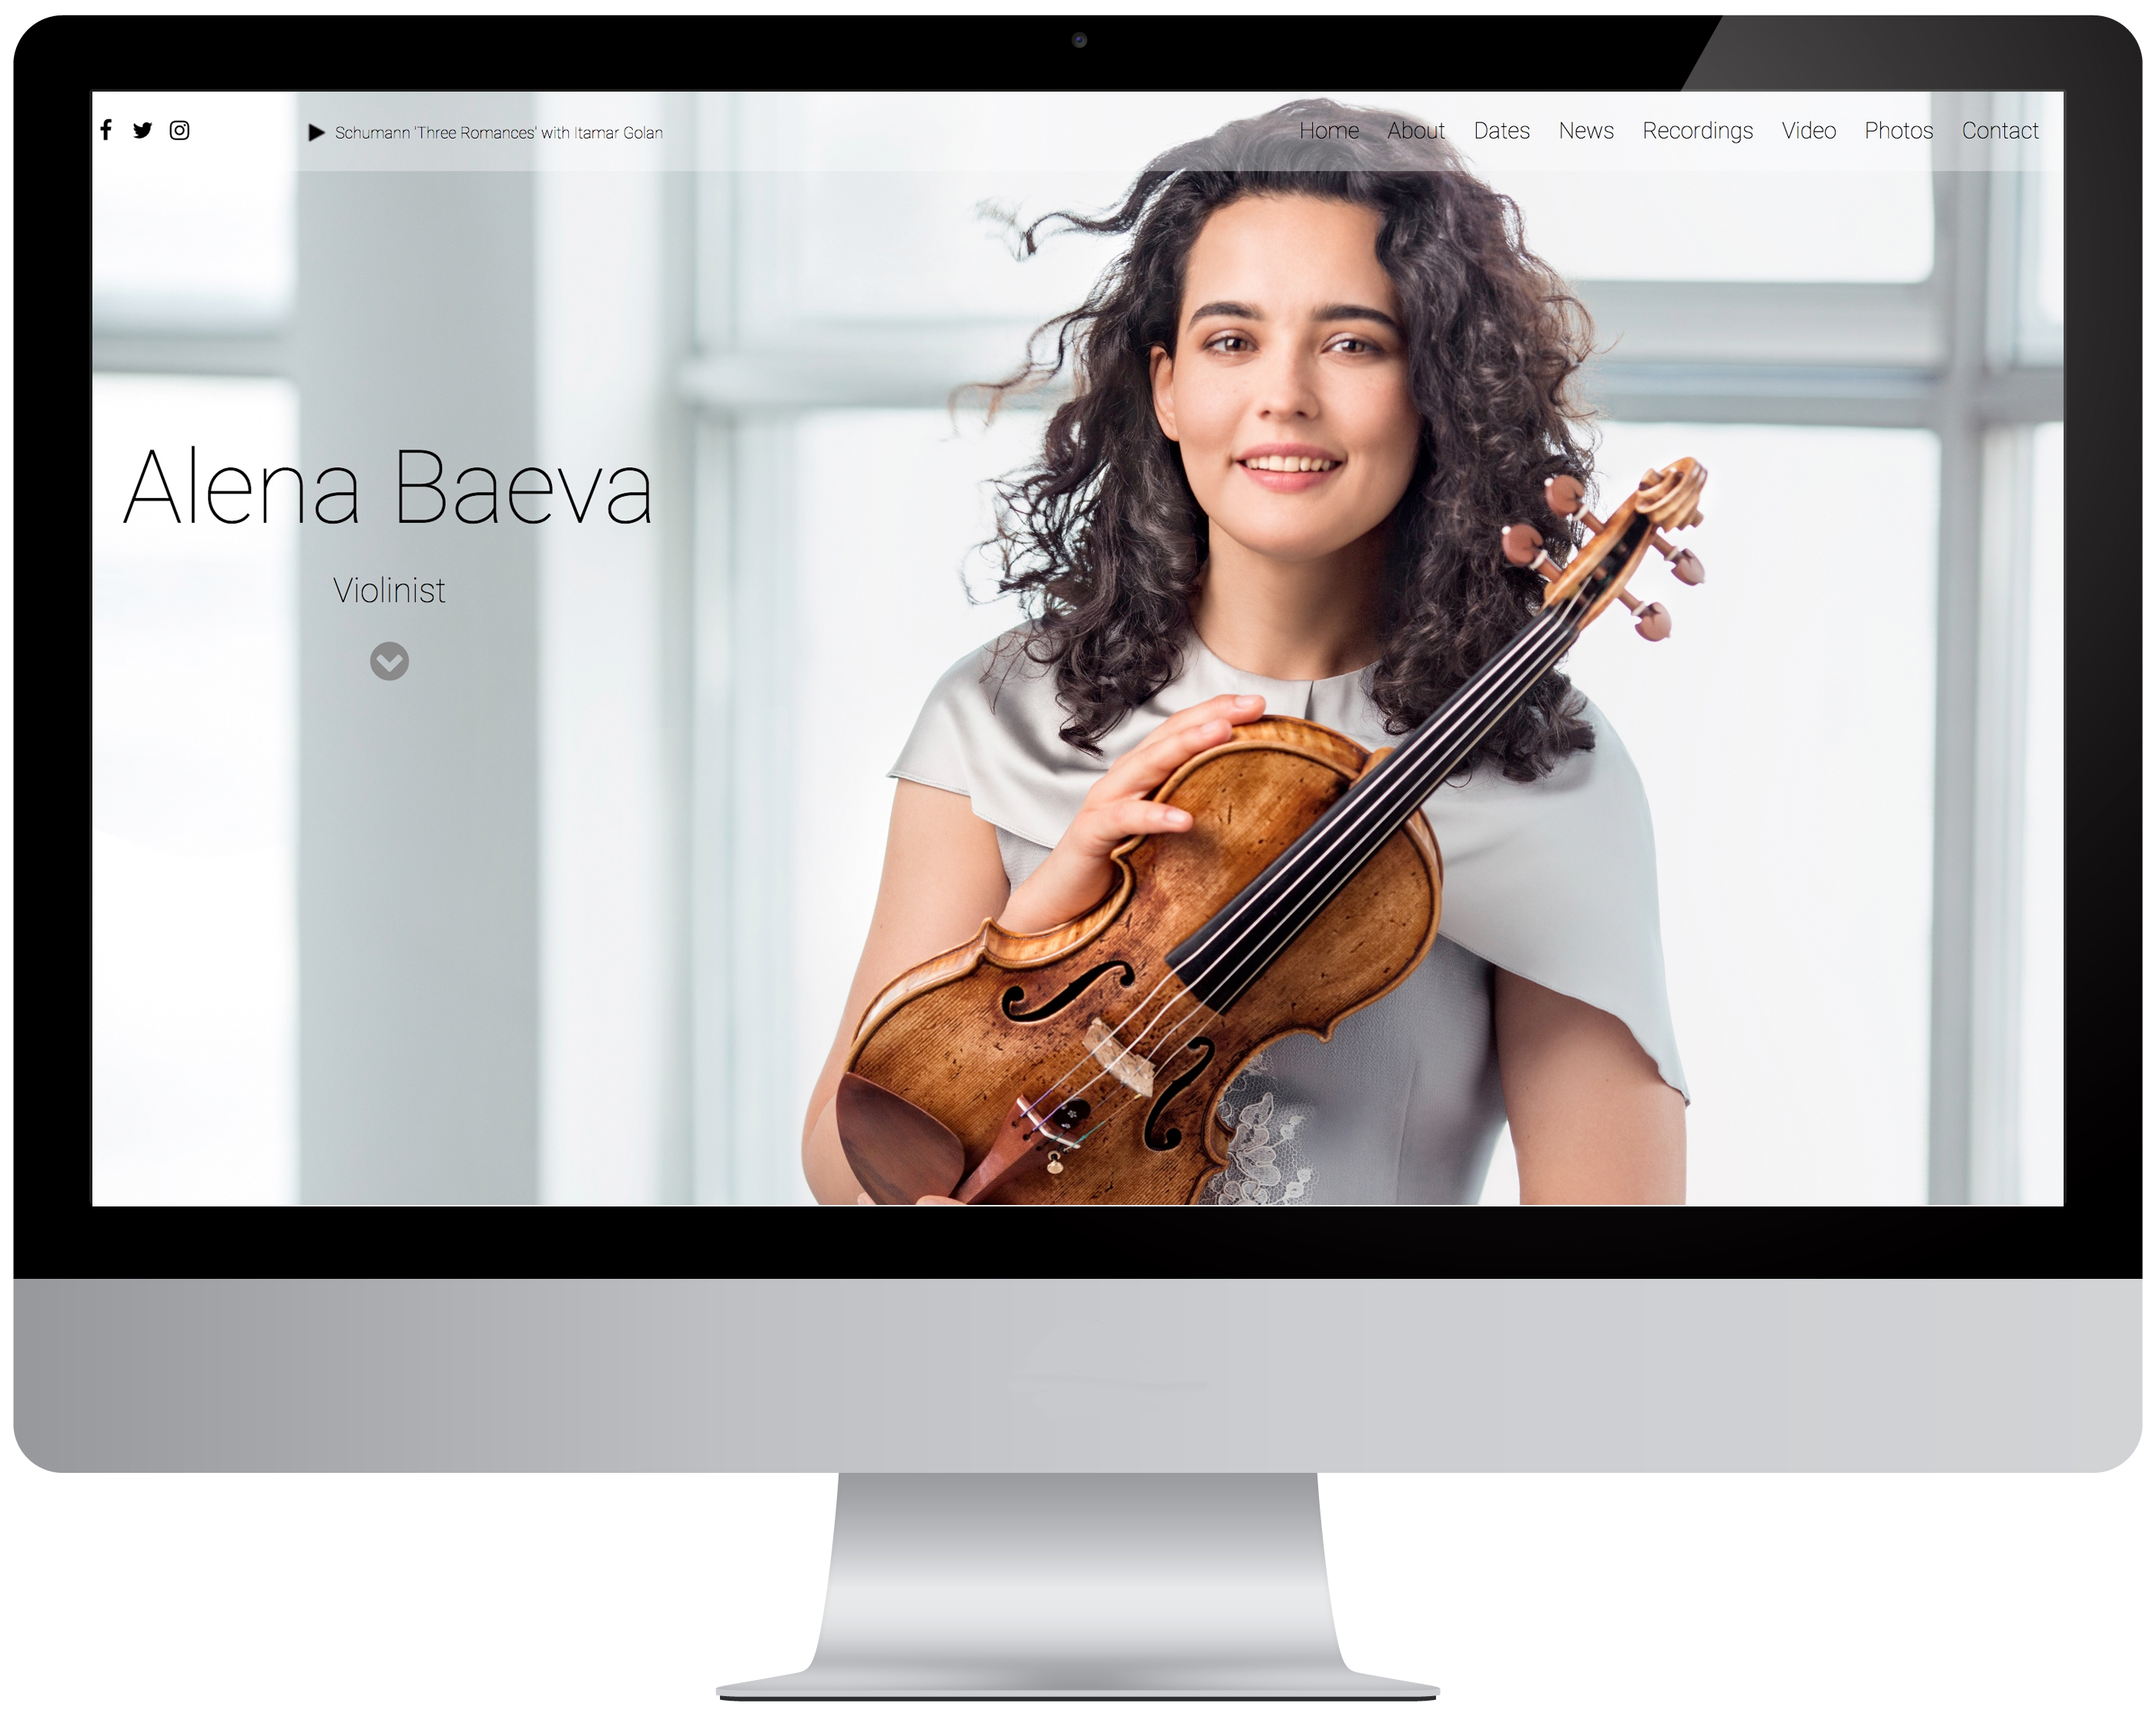 Video Production and Website Design Services for Musicians 25